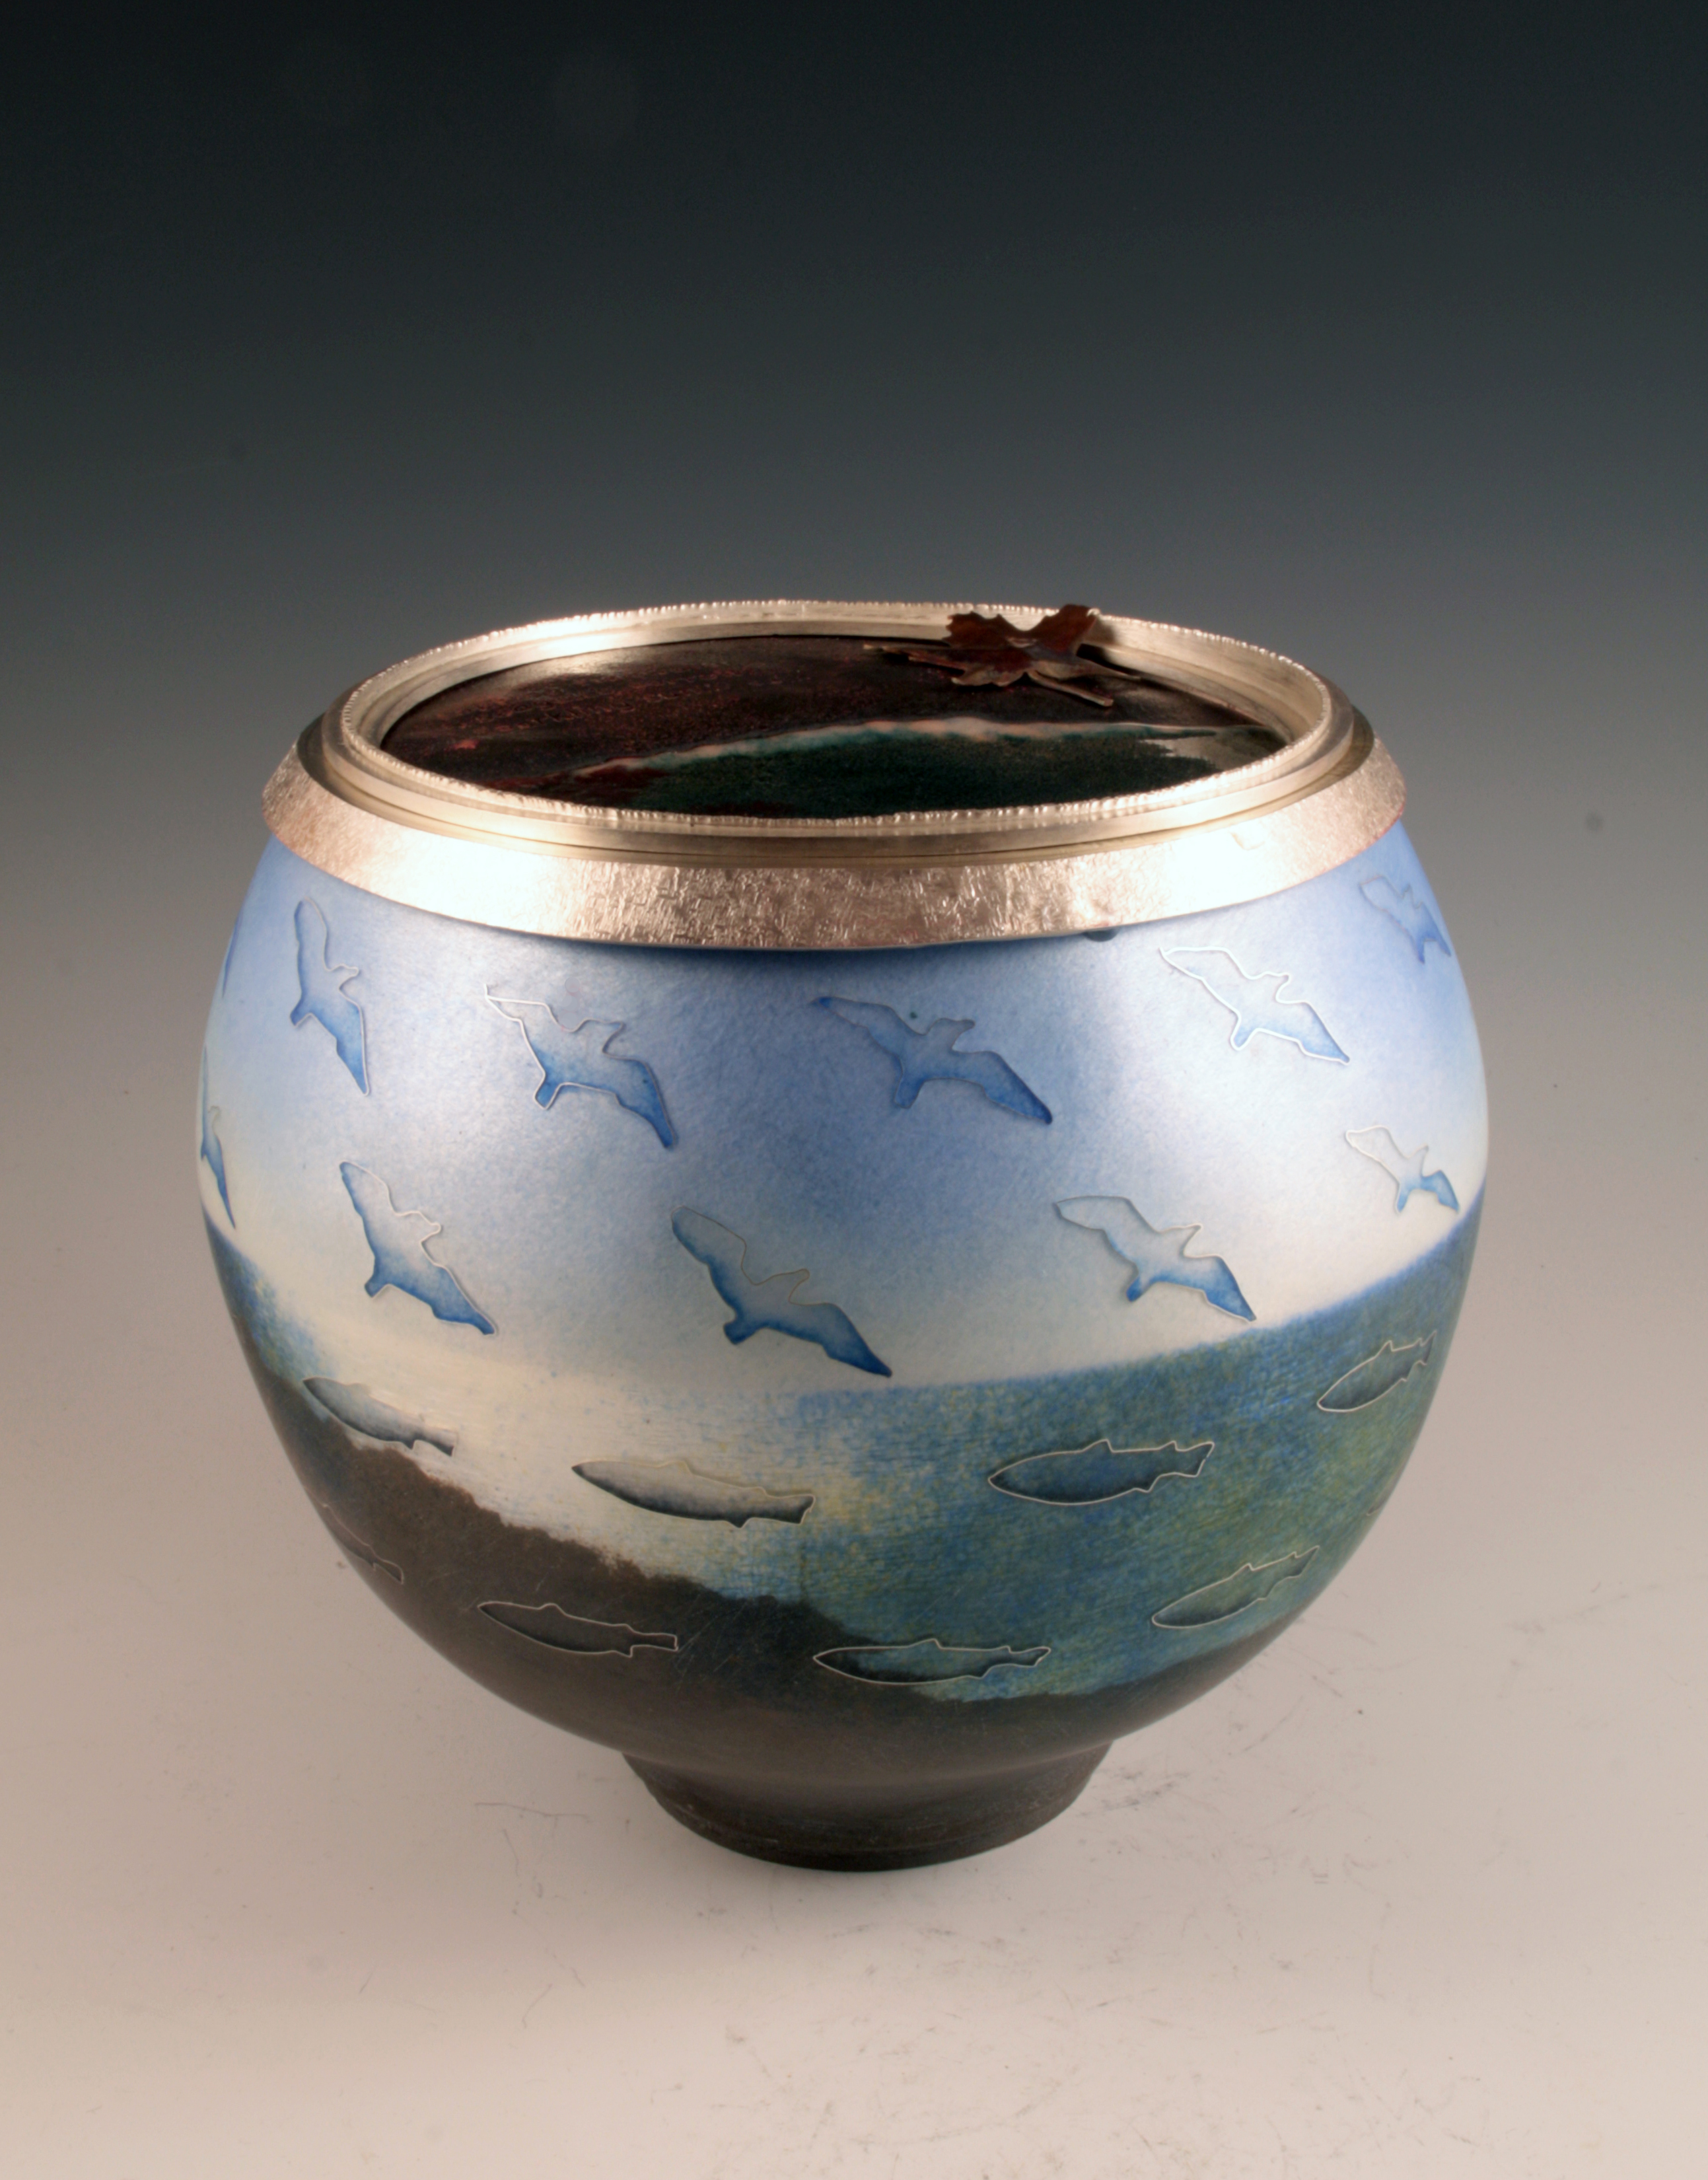 Harlan Butt Acadia Vessel #4, 2015 Silver, enamel and copper Courtesy the artist